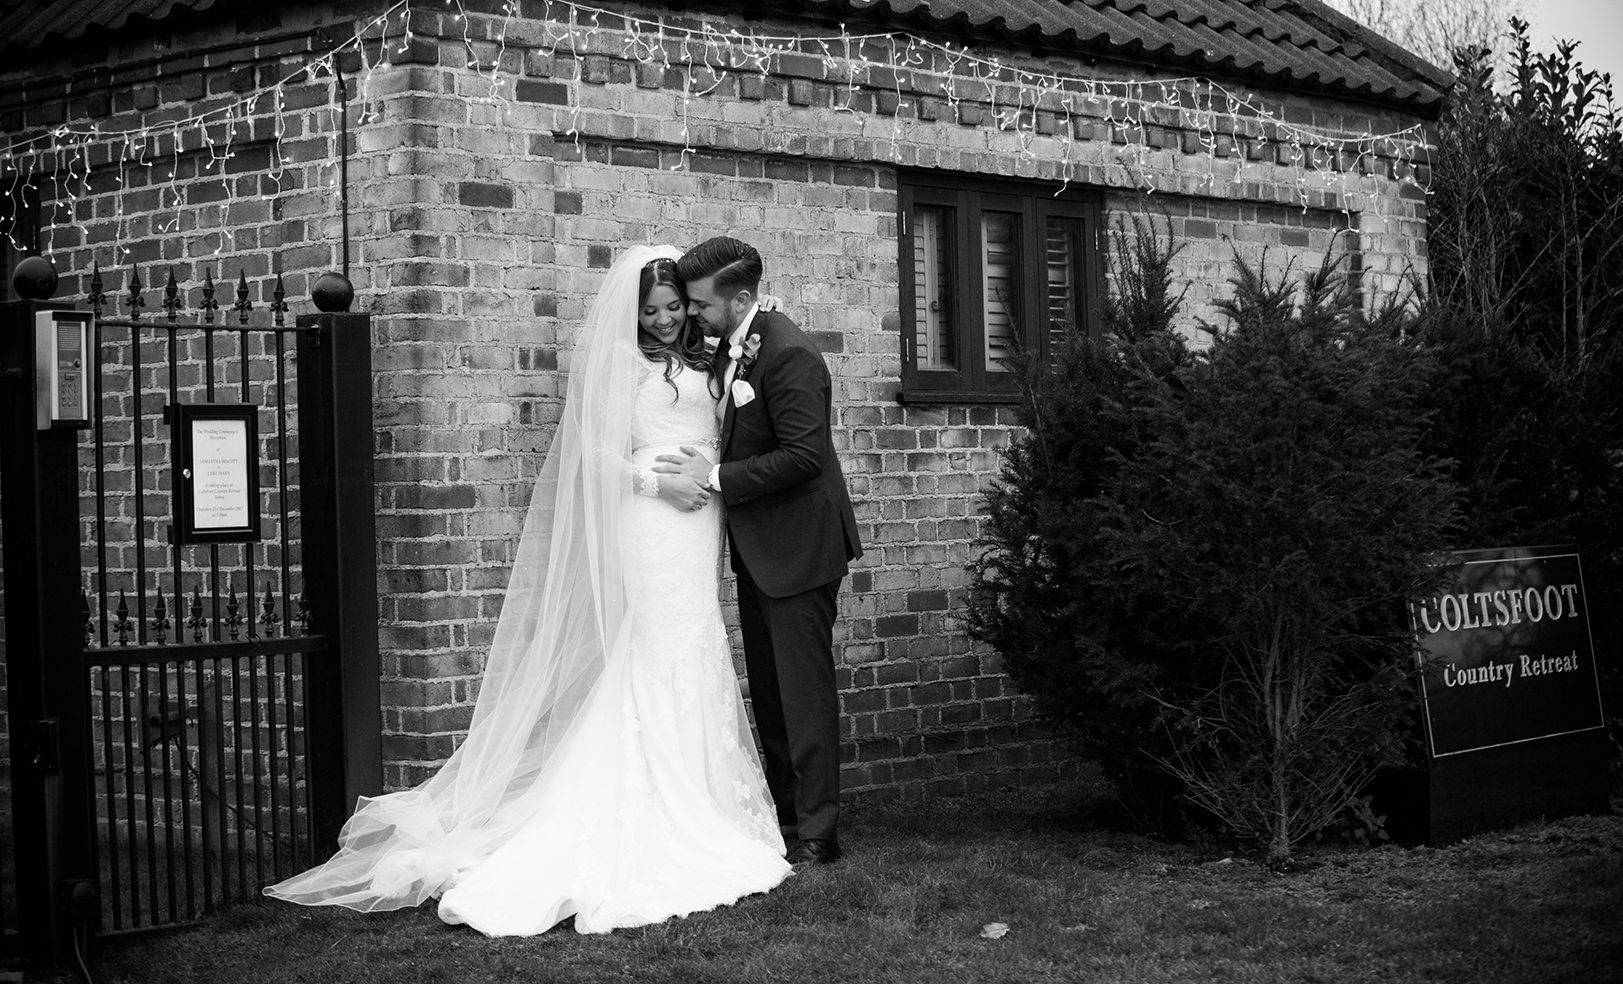 Wedding photographer herts